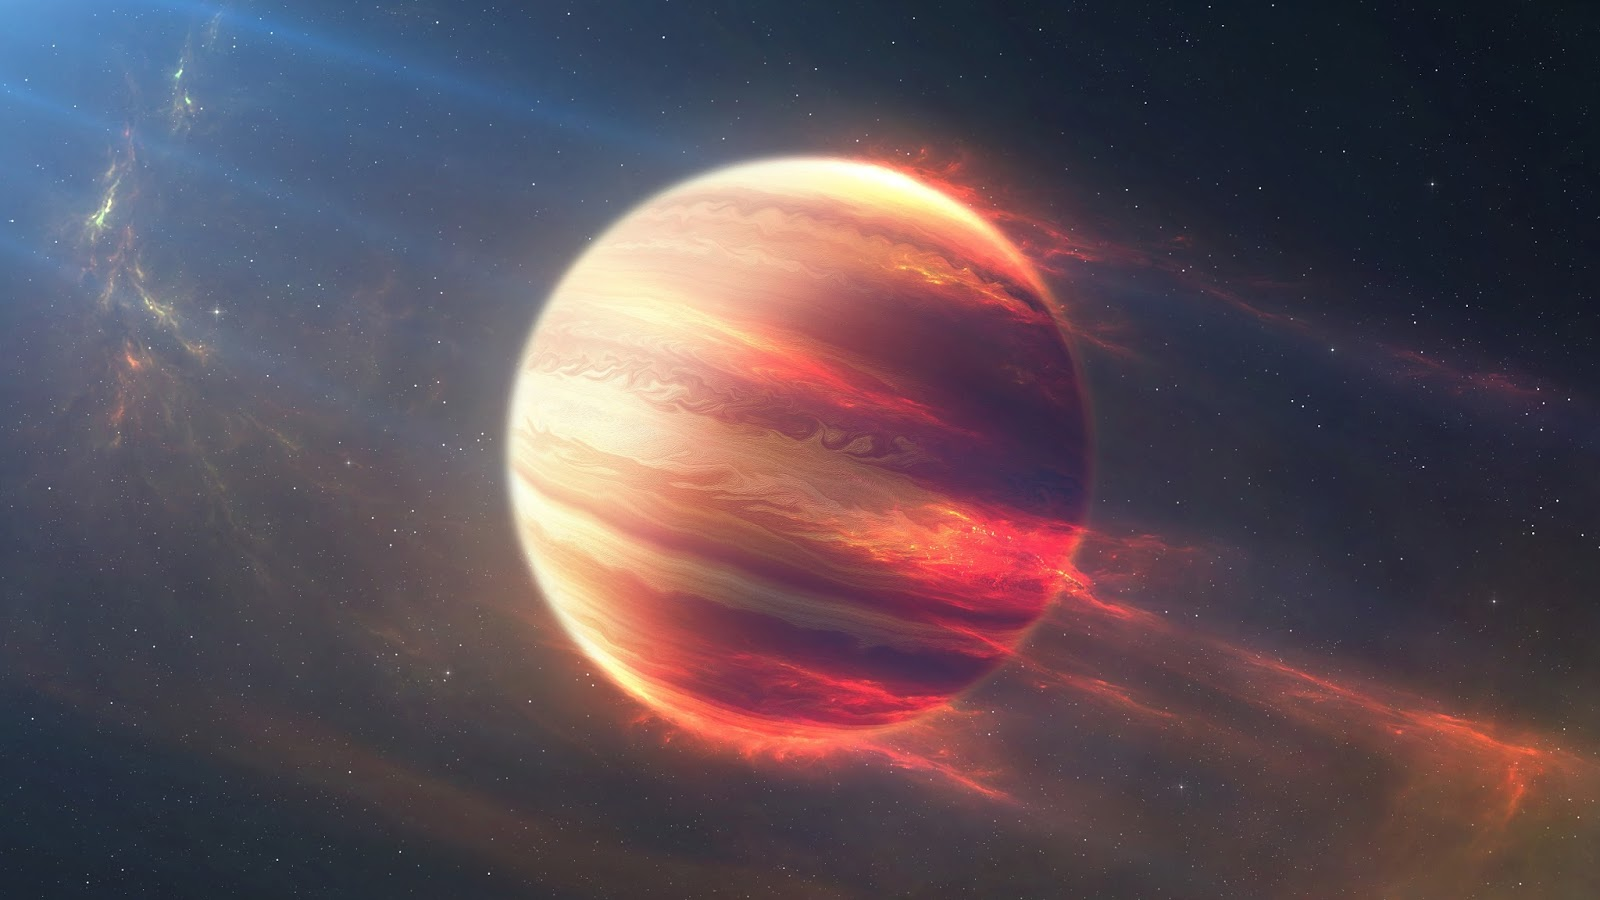 Beyond Earthly Skies: Hot Planet Orbiting a Rapidly-Rotating